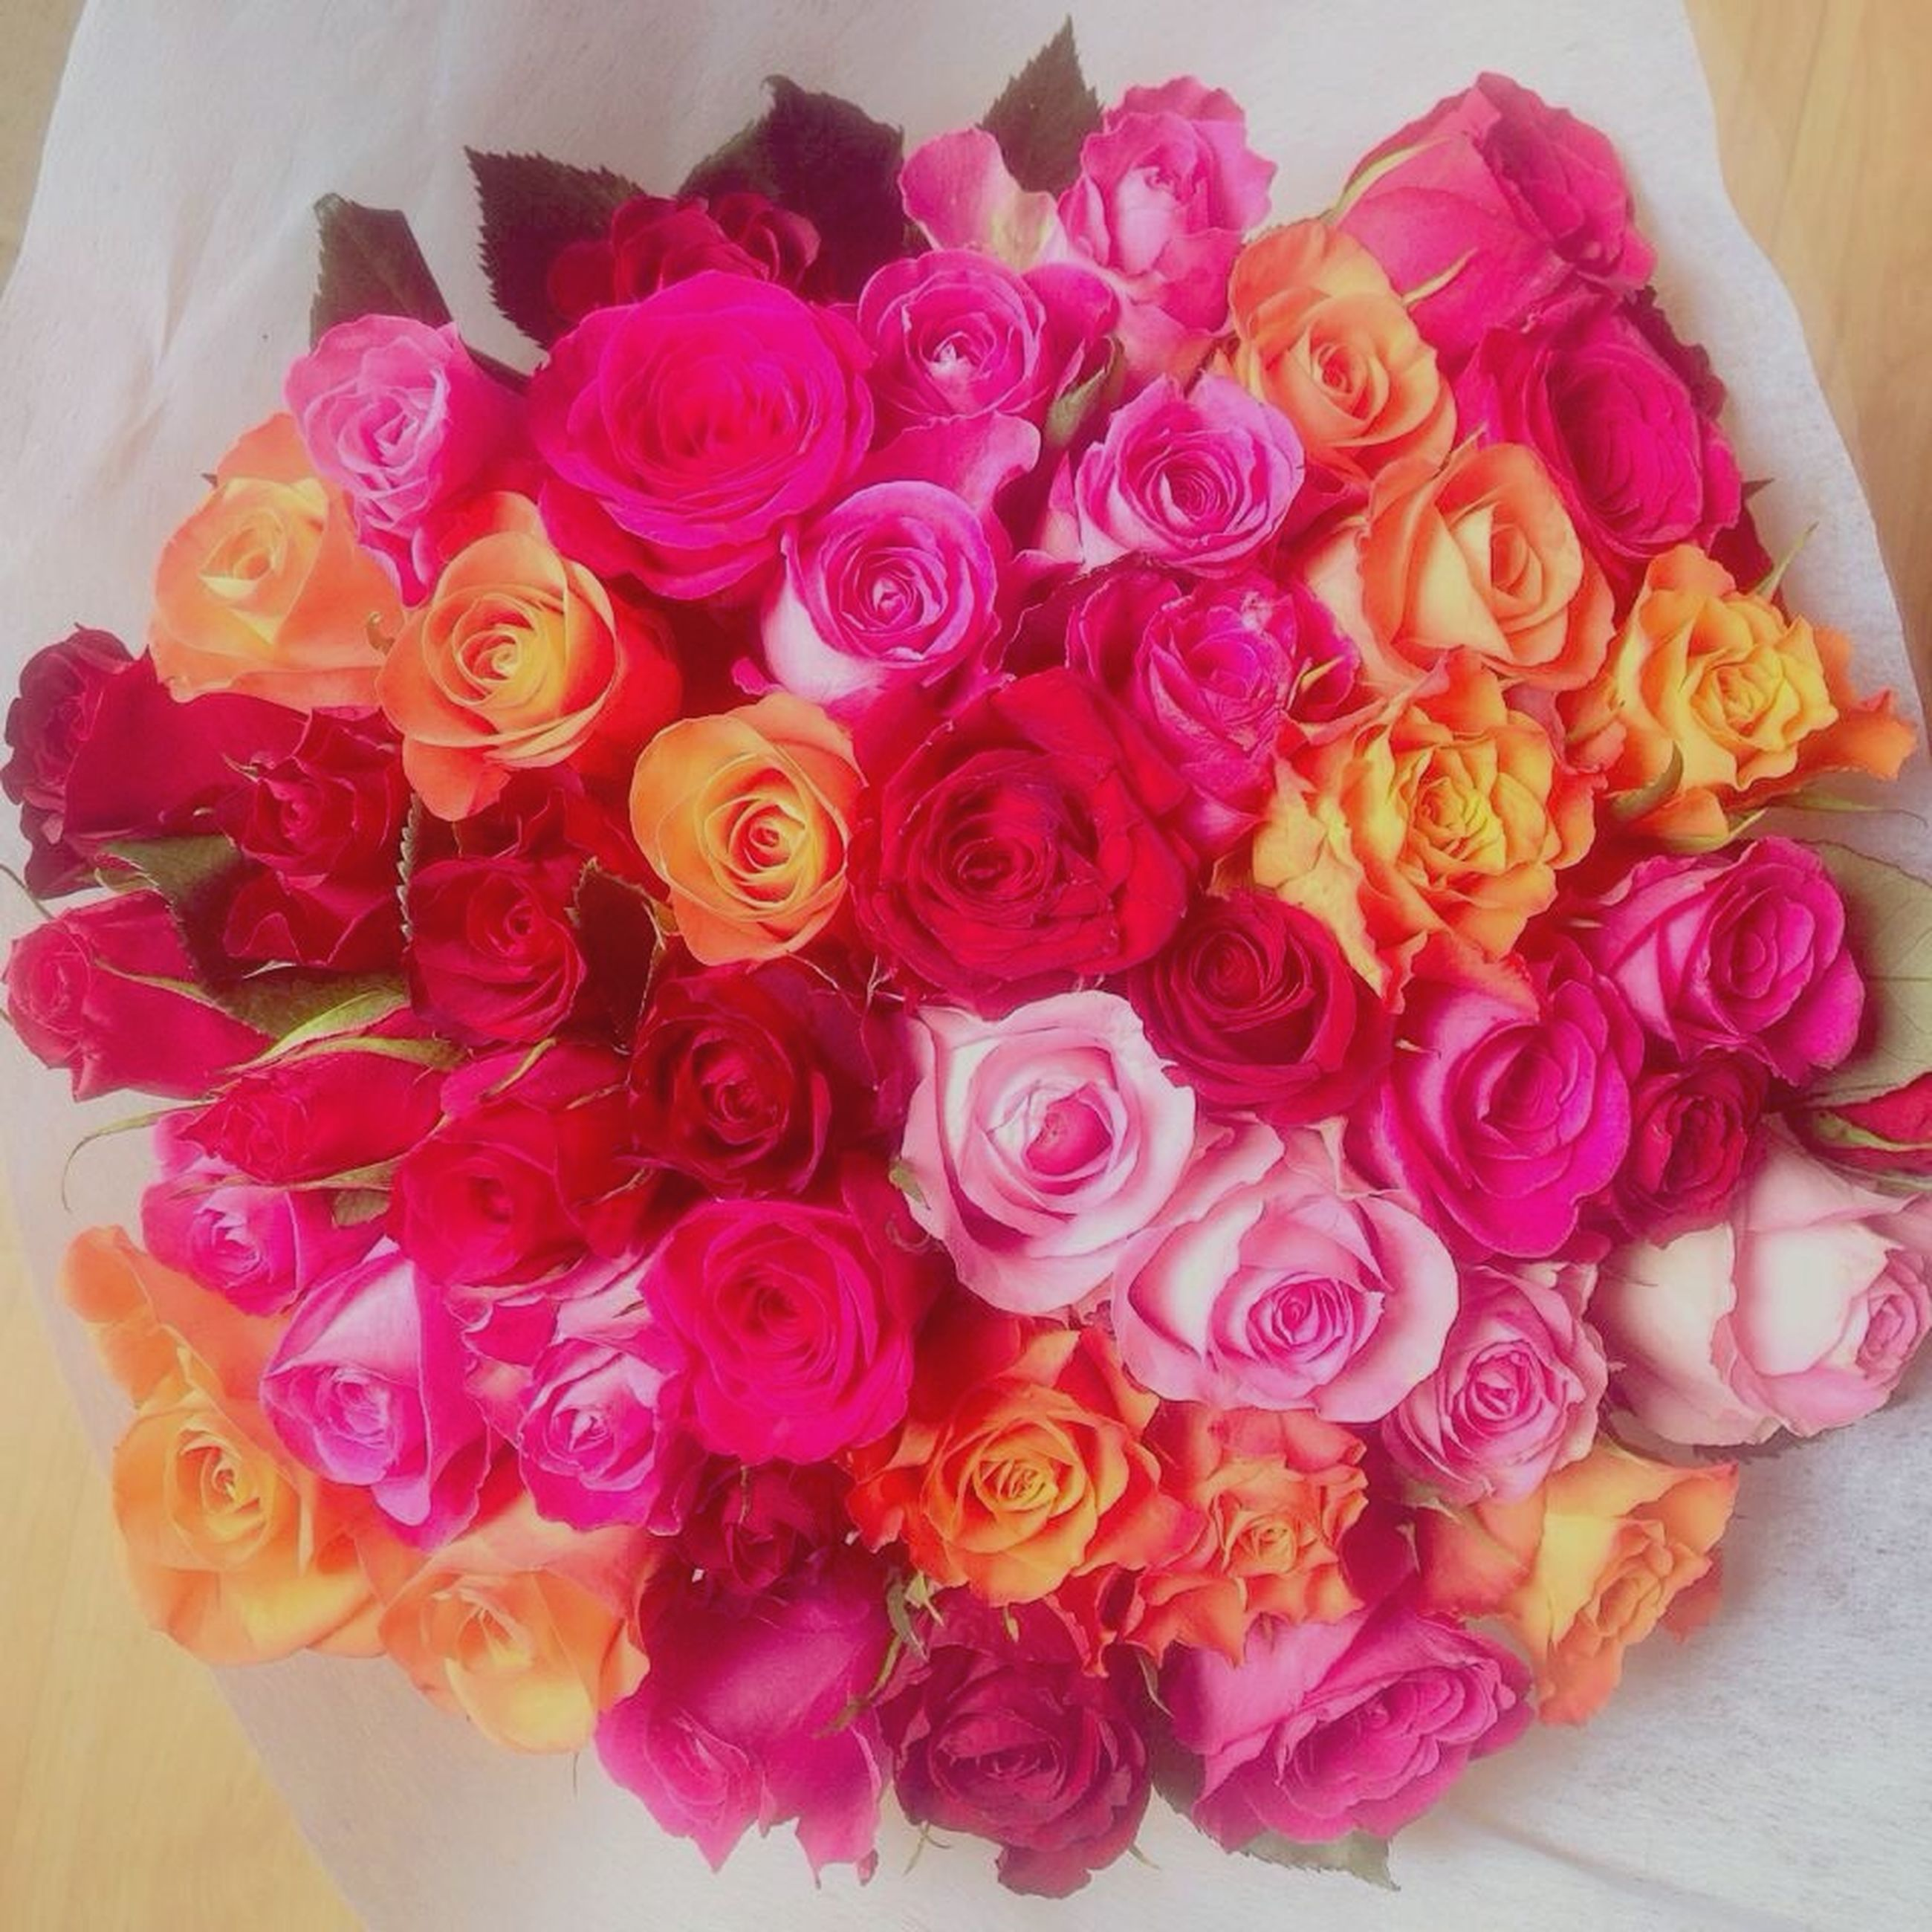 indoors, freshness, flower, still life, high angle view, petal, food, food and drink, multi colored, table, variation, sweet food, close-up, fragility, flower head, bouquet, rose - flower, no people, arrangement, decoration